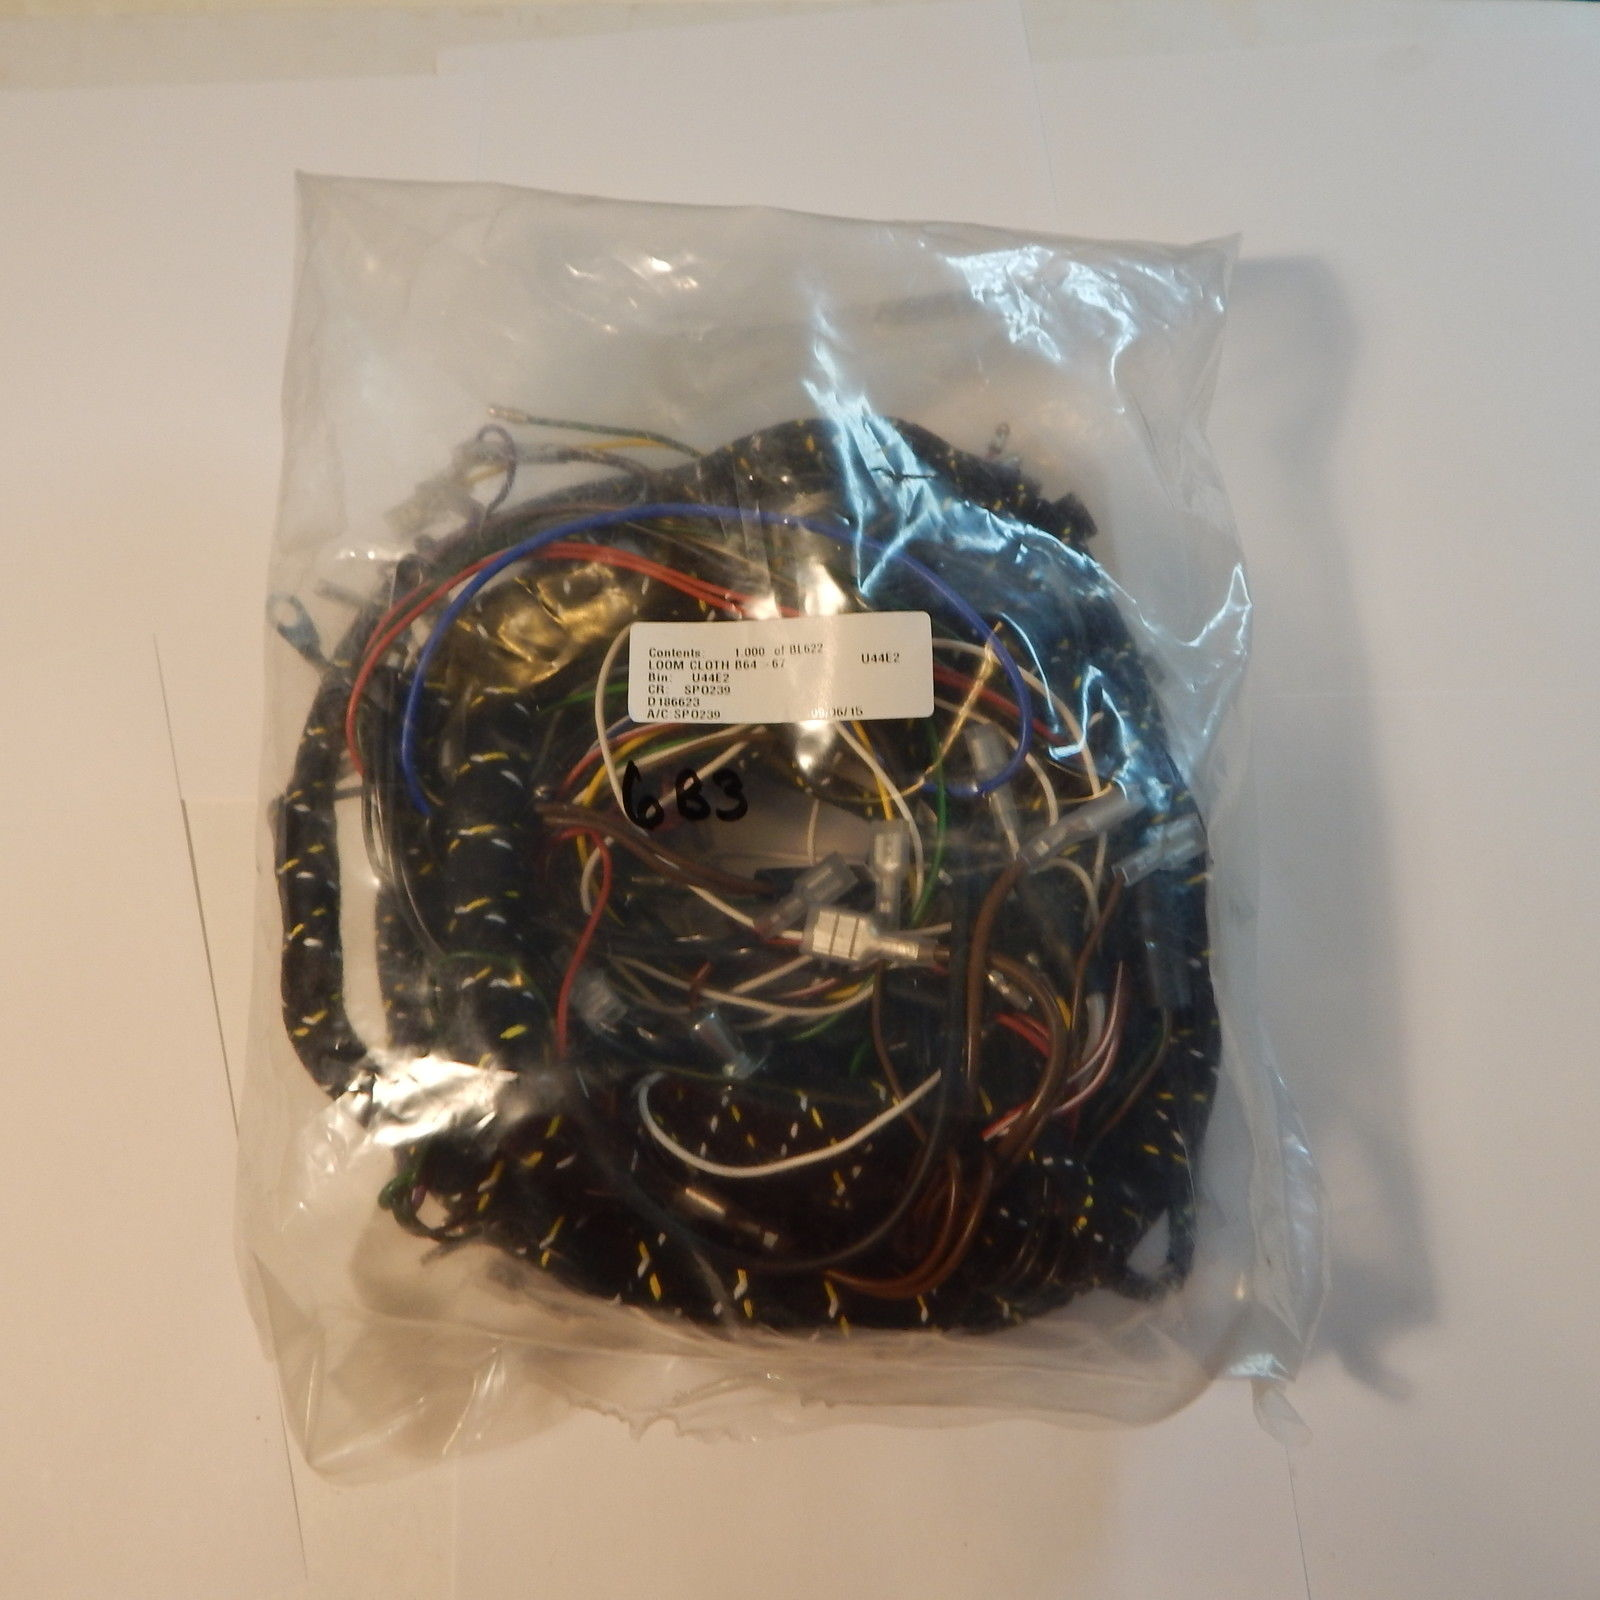 Cloth Covered Main Wiring Harness For Mg Mgb 1965